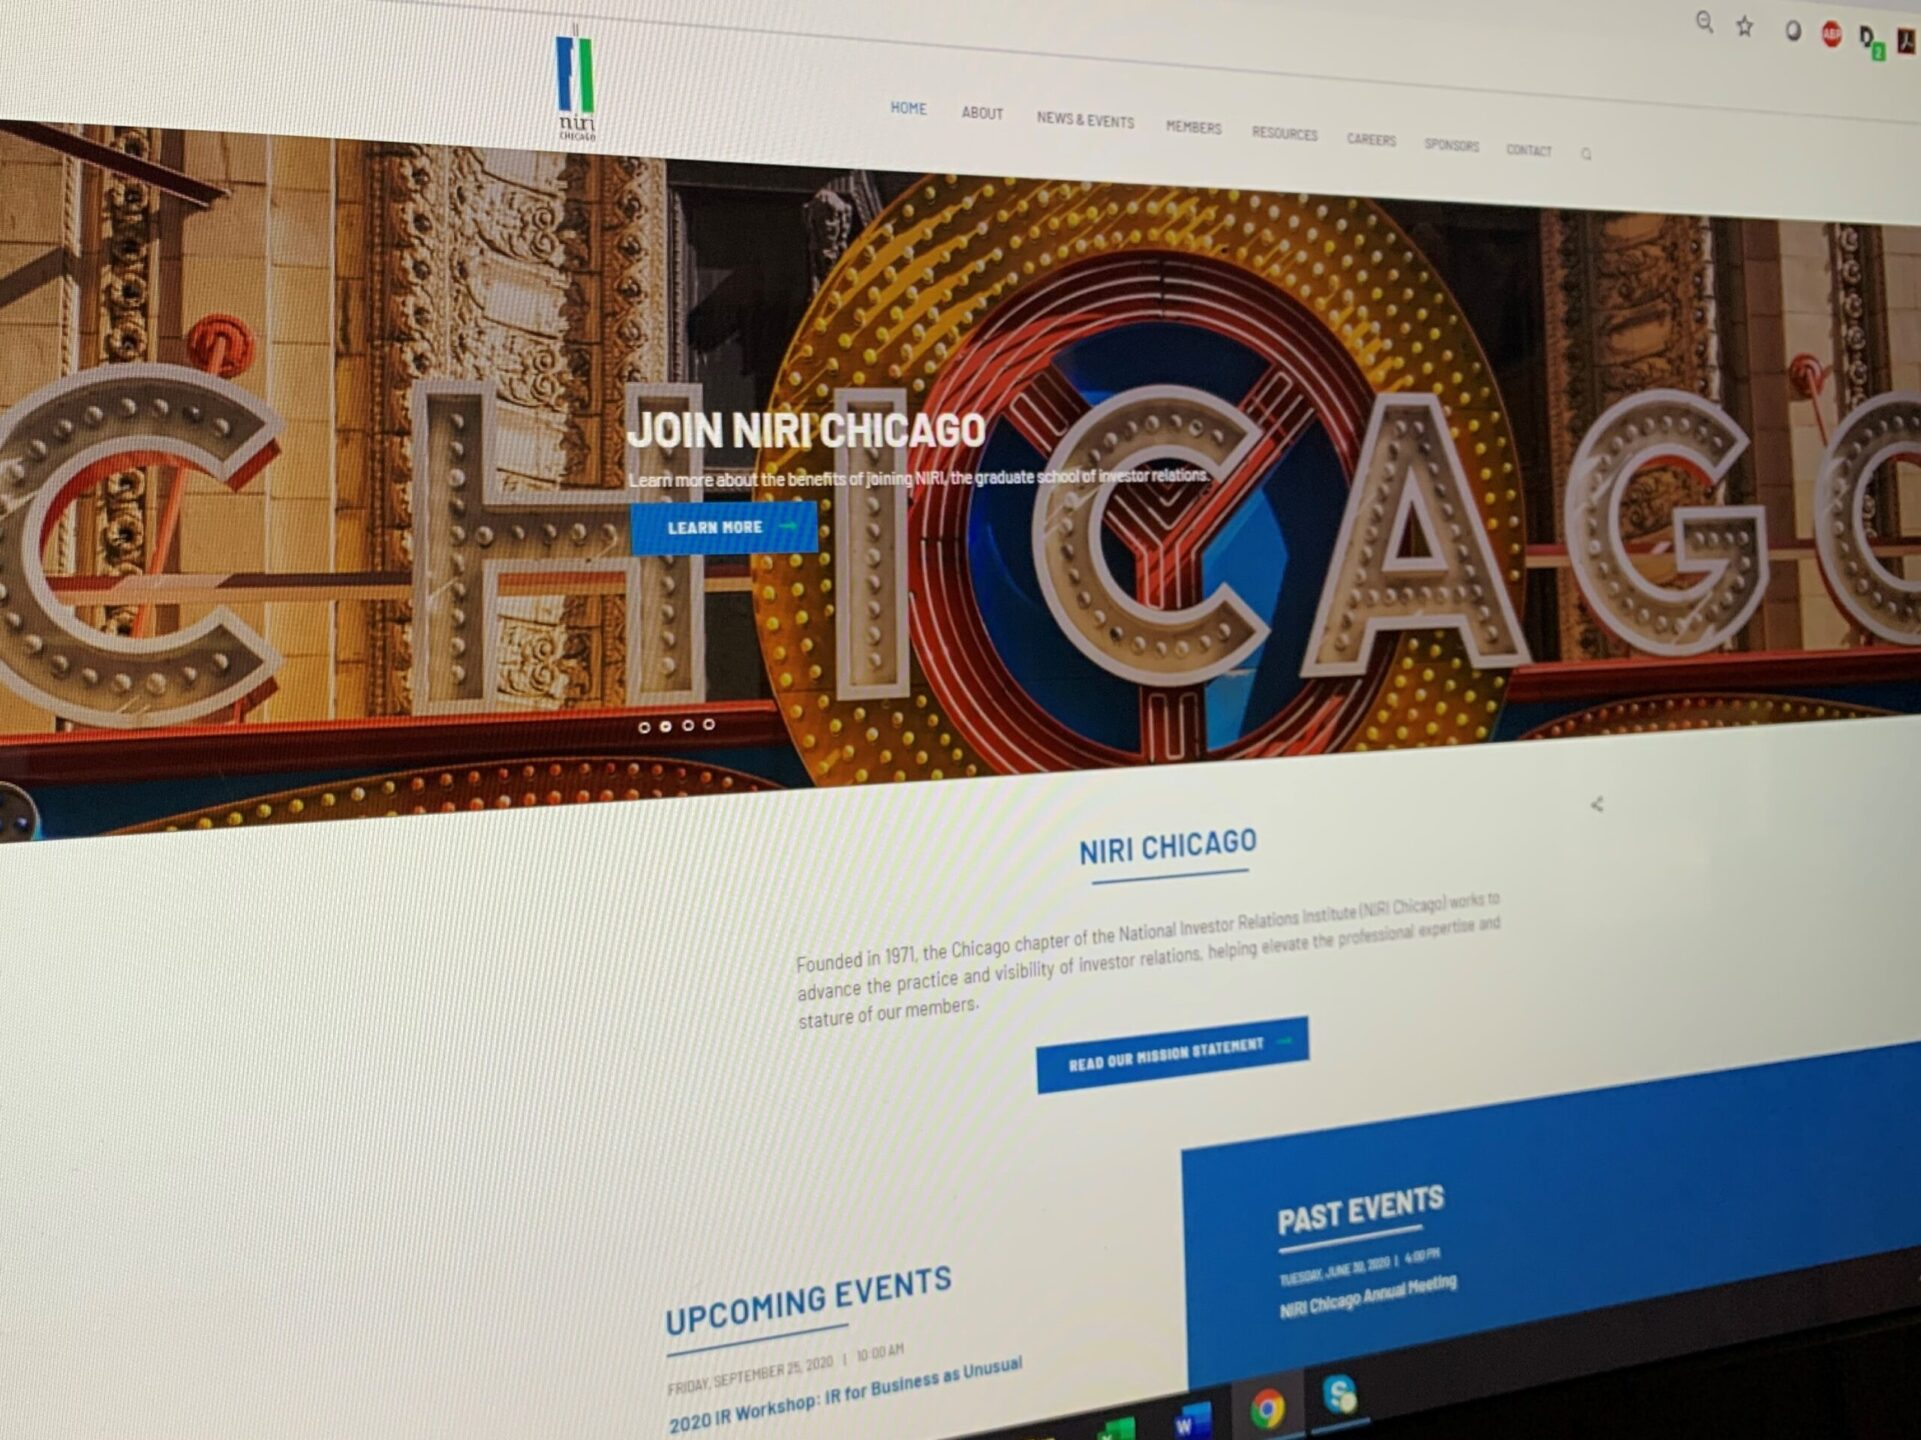 NIRI Chicago 2020 website redesign